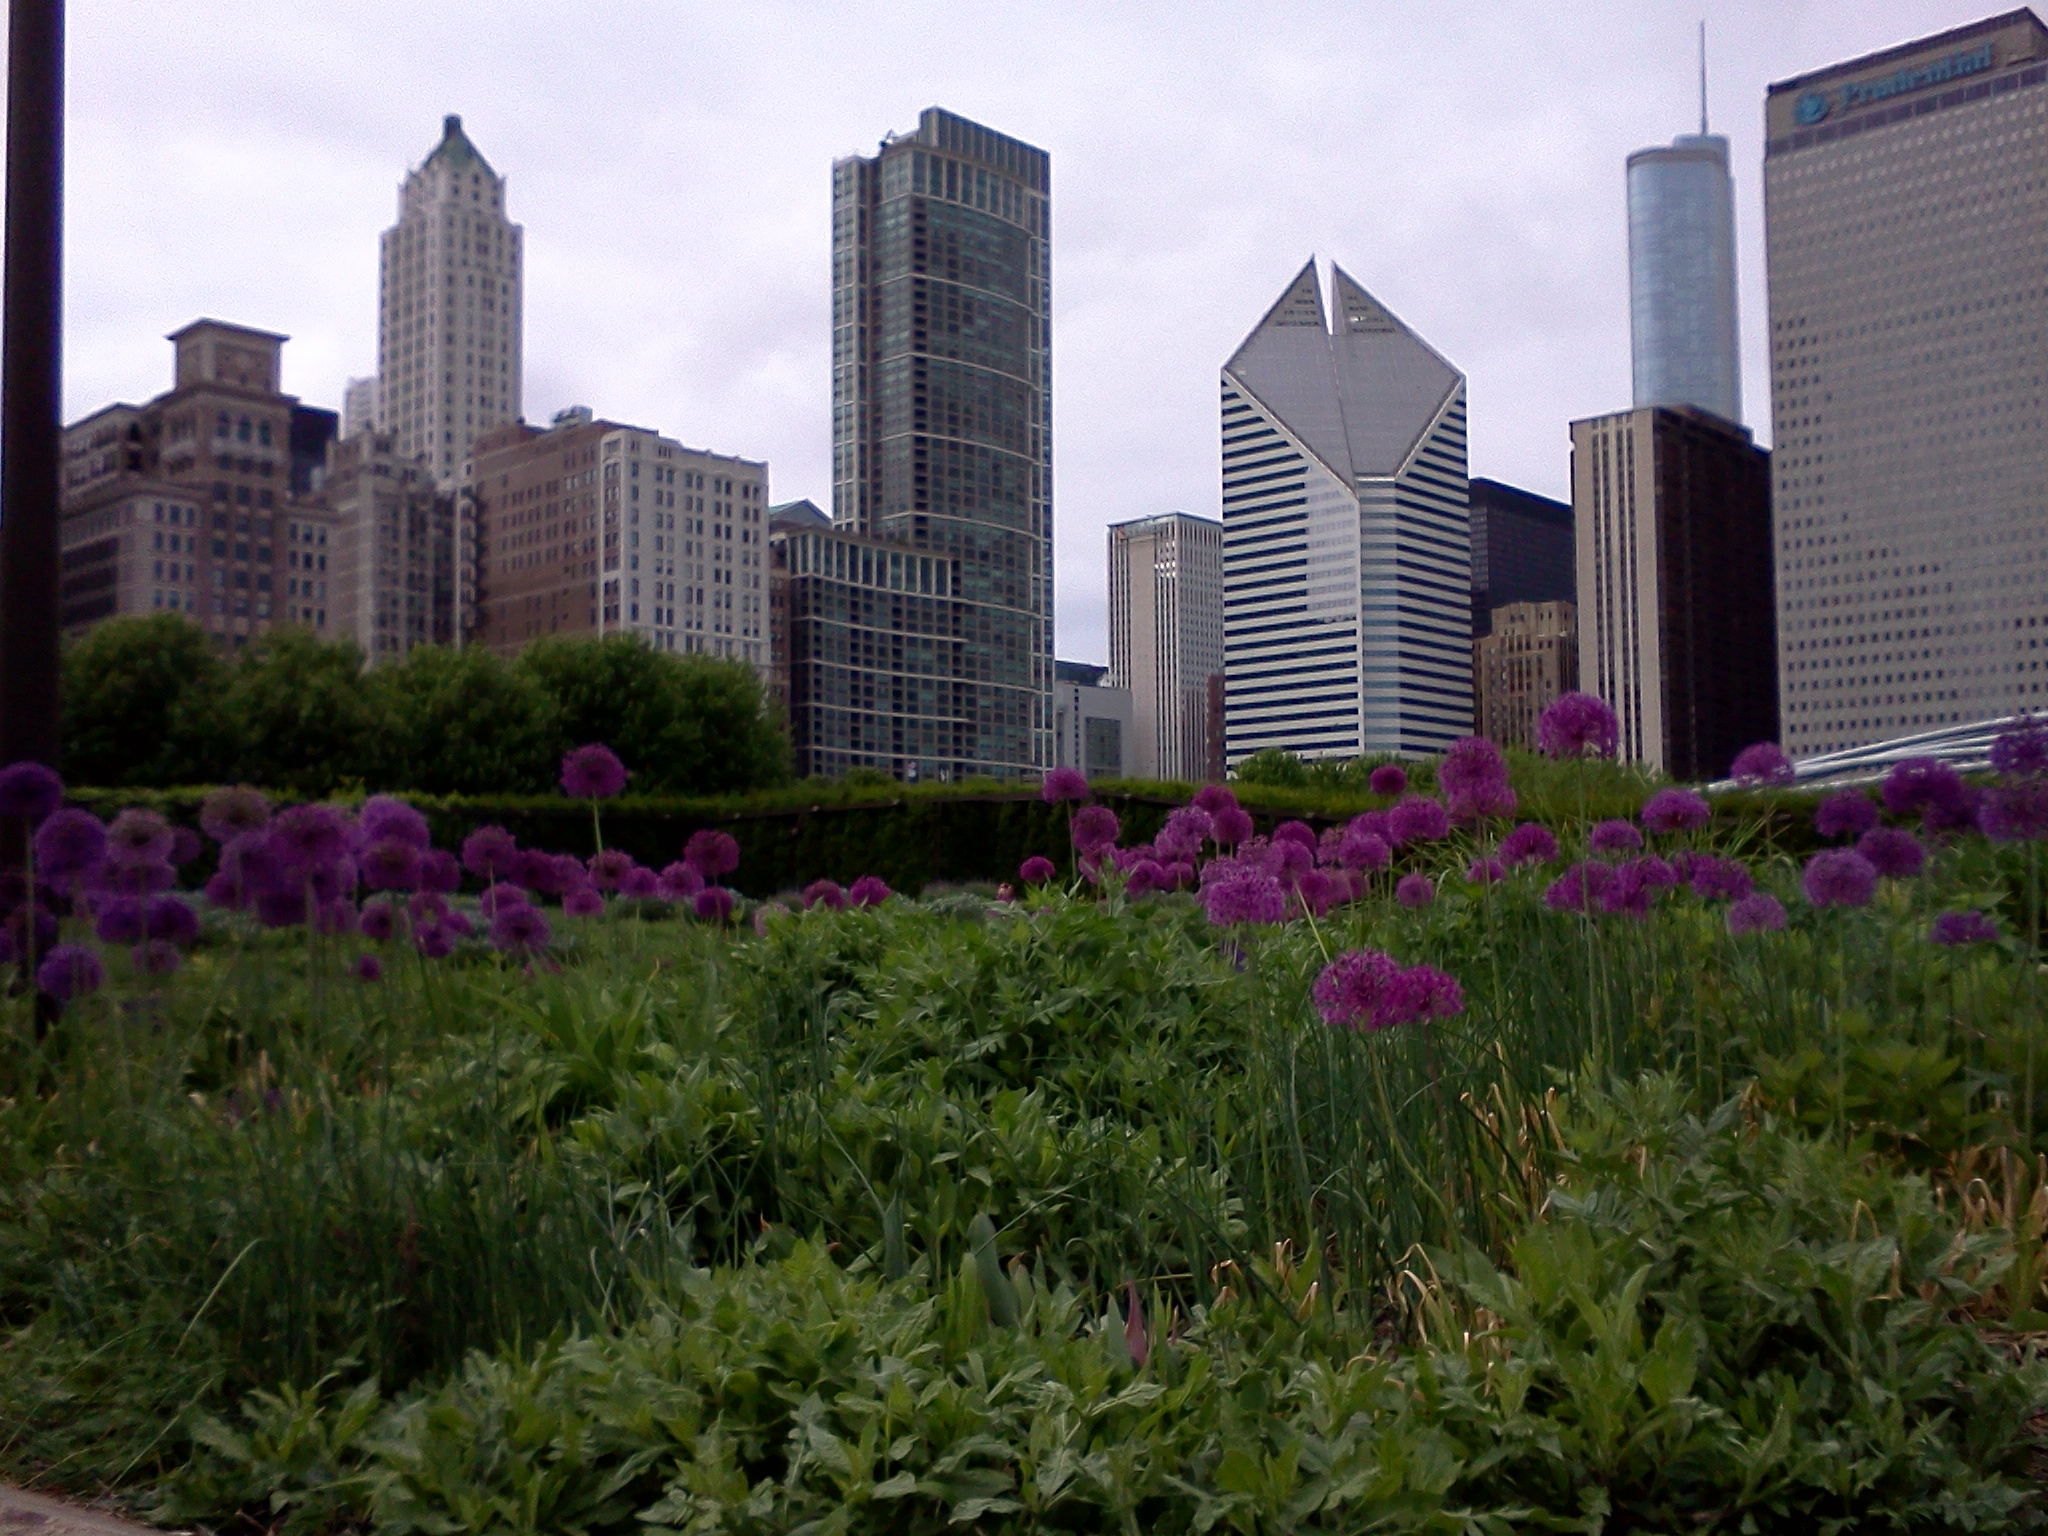 Image of the Lurie Garden in Millennium Park, Chicago, Illinois